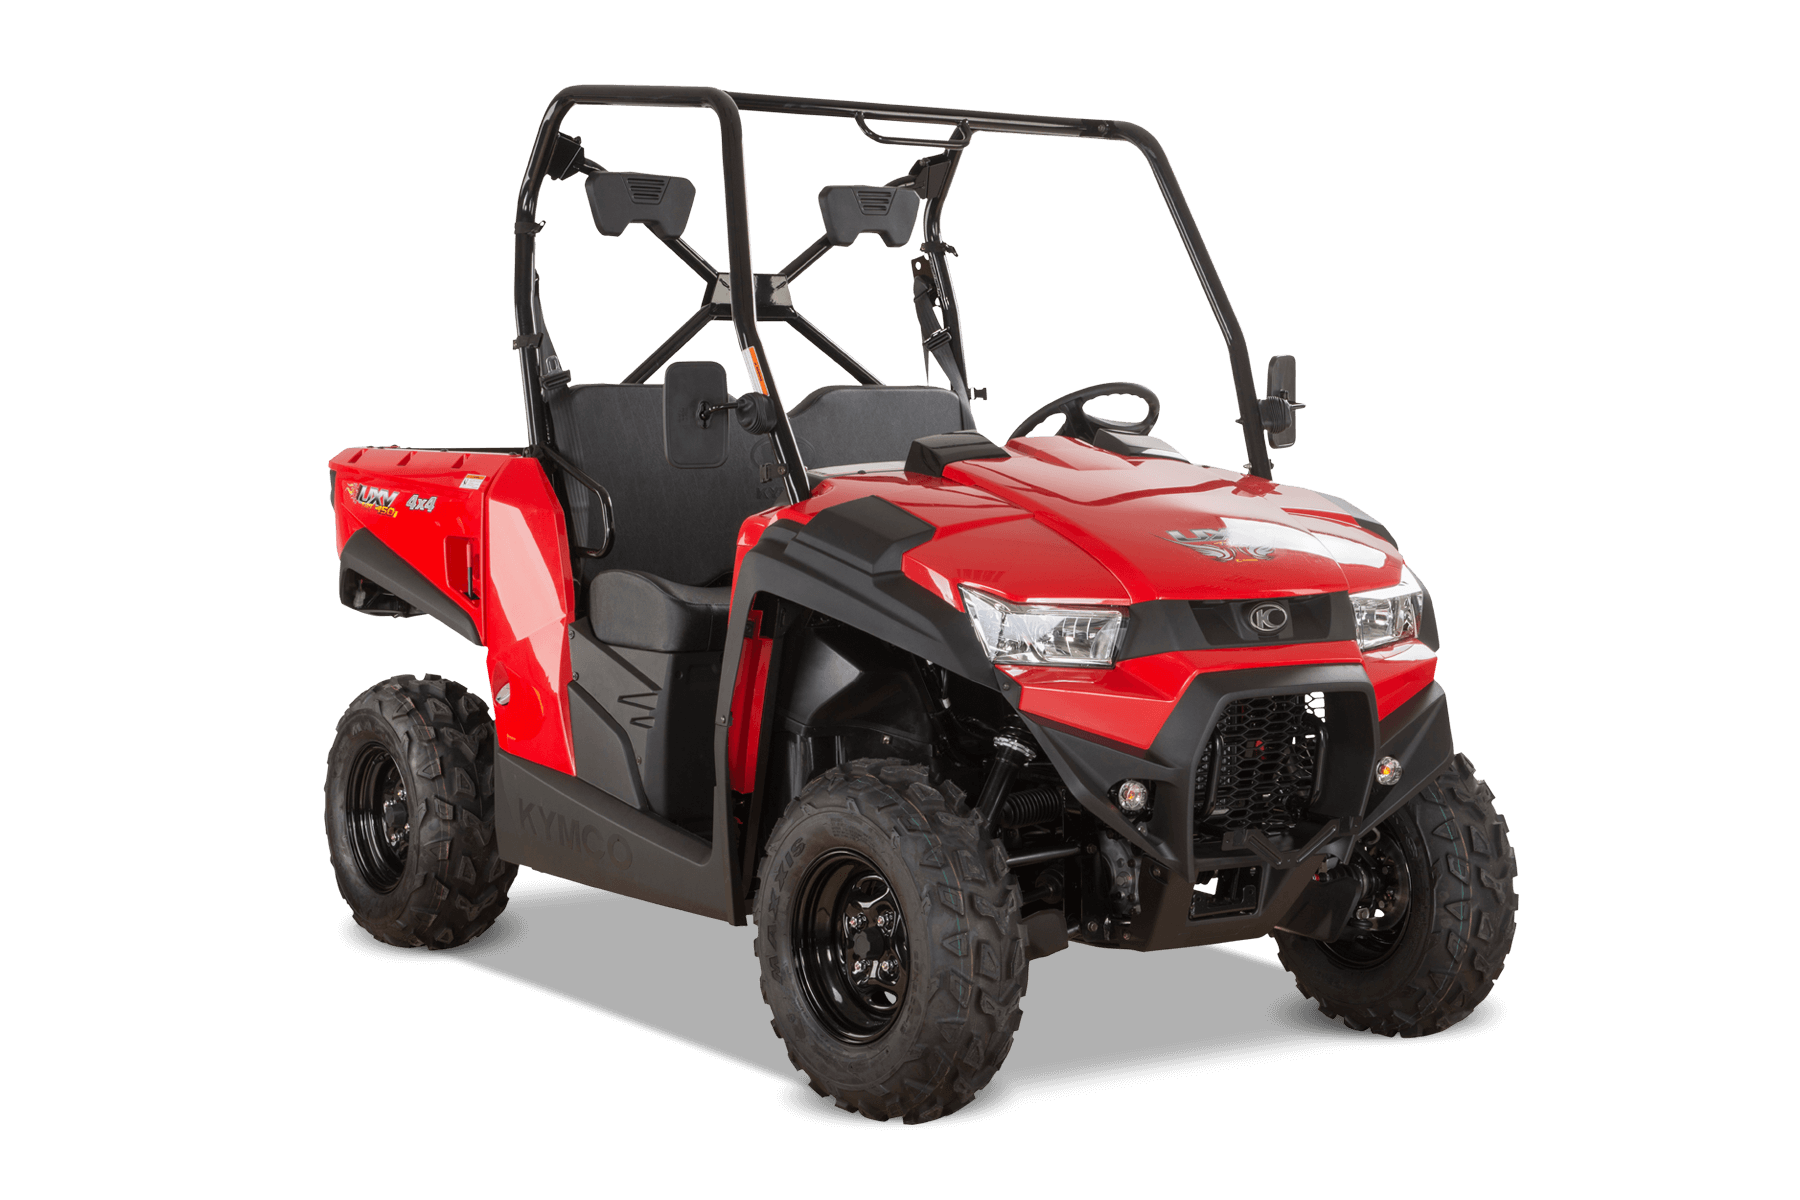 quad side by side utv atv kymco modell 450i top arbeits. Black Bedroom Furniture Sets. Home Design Ideas